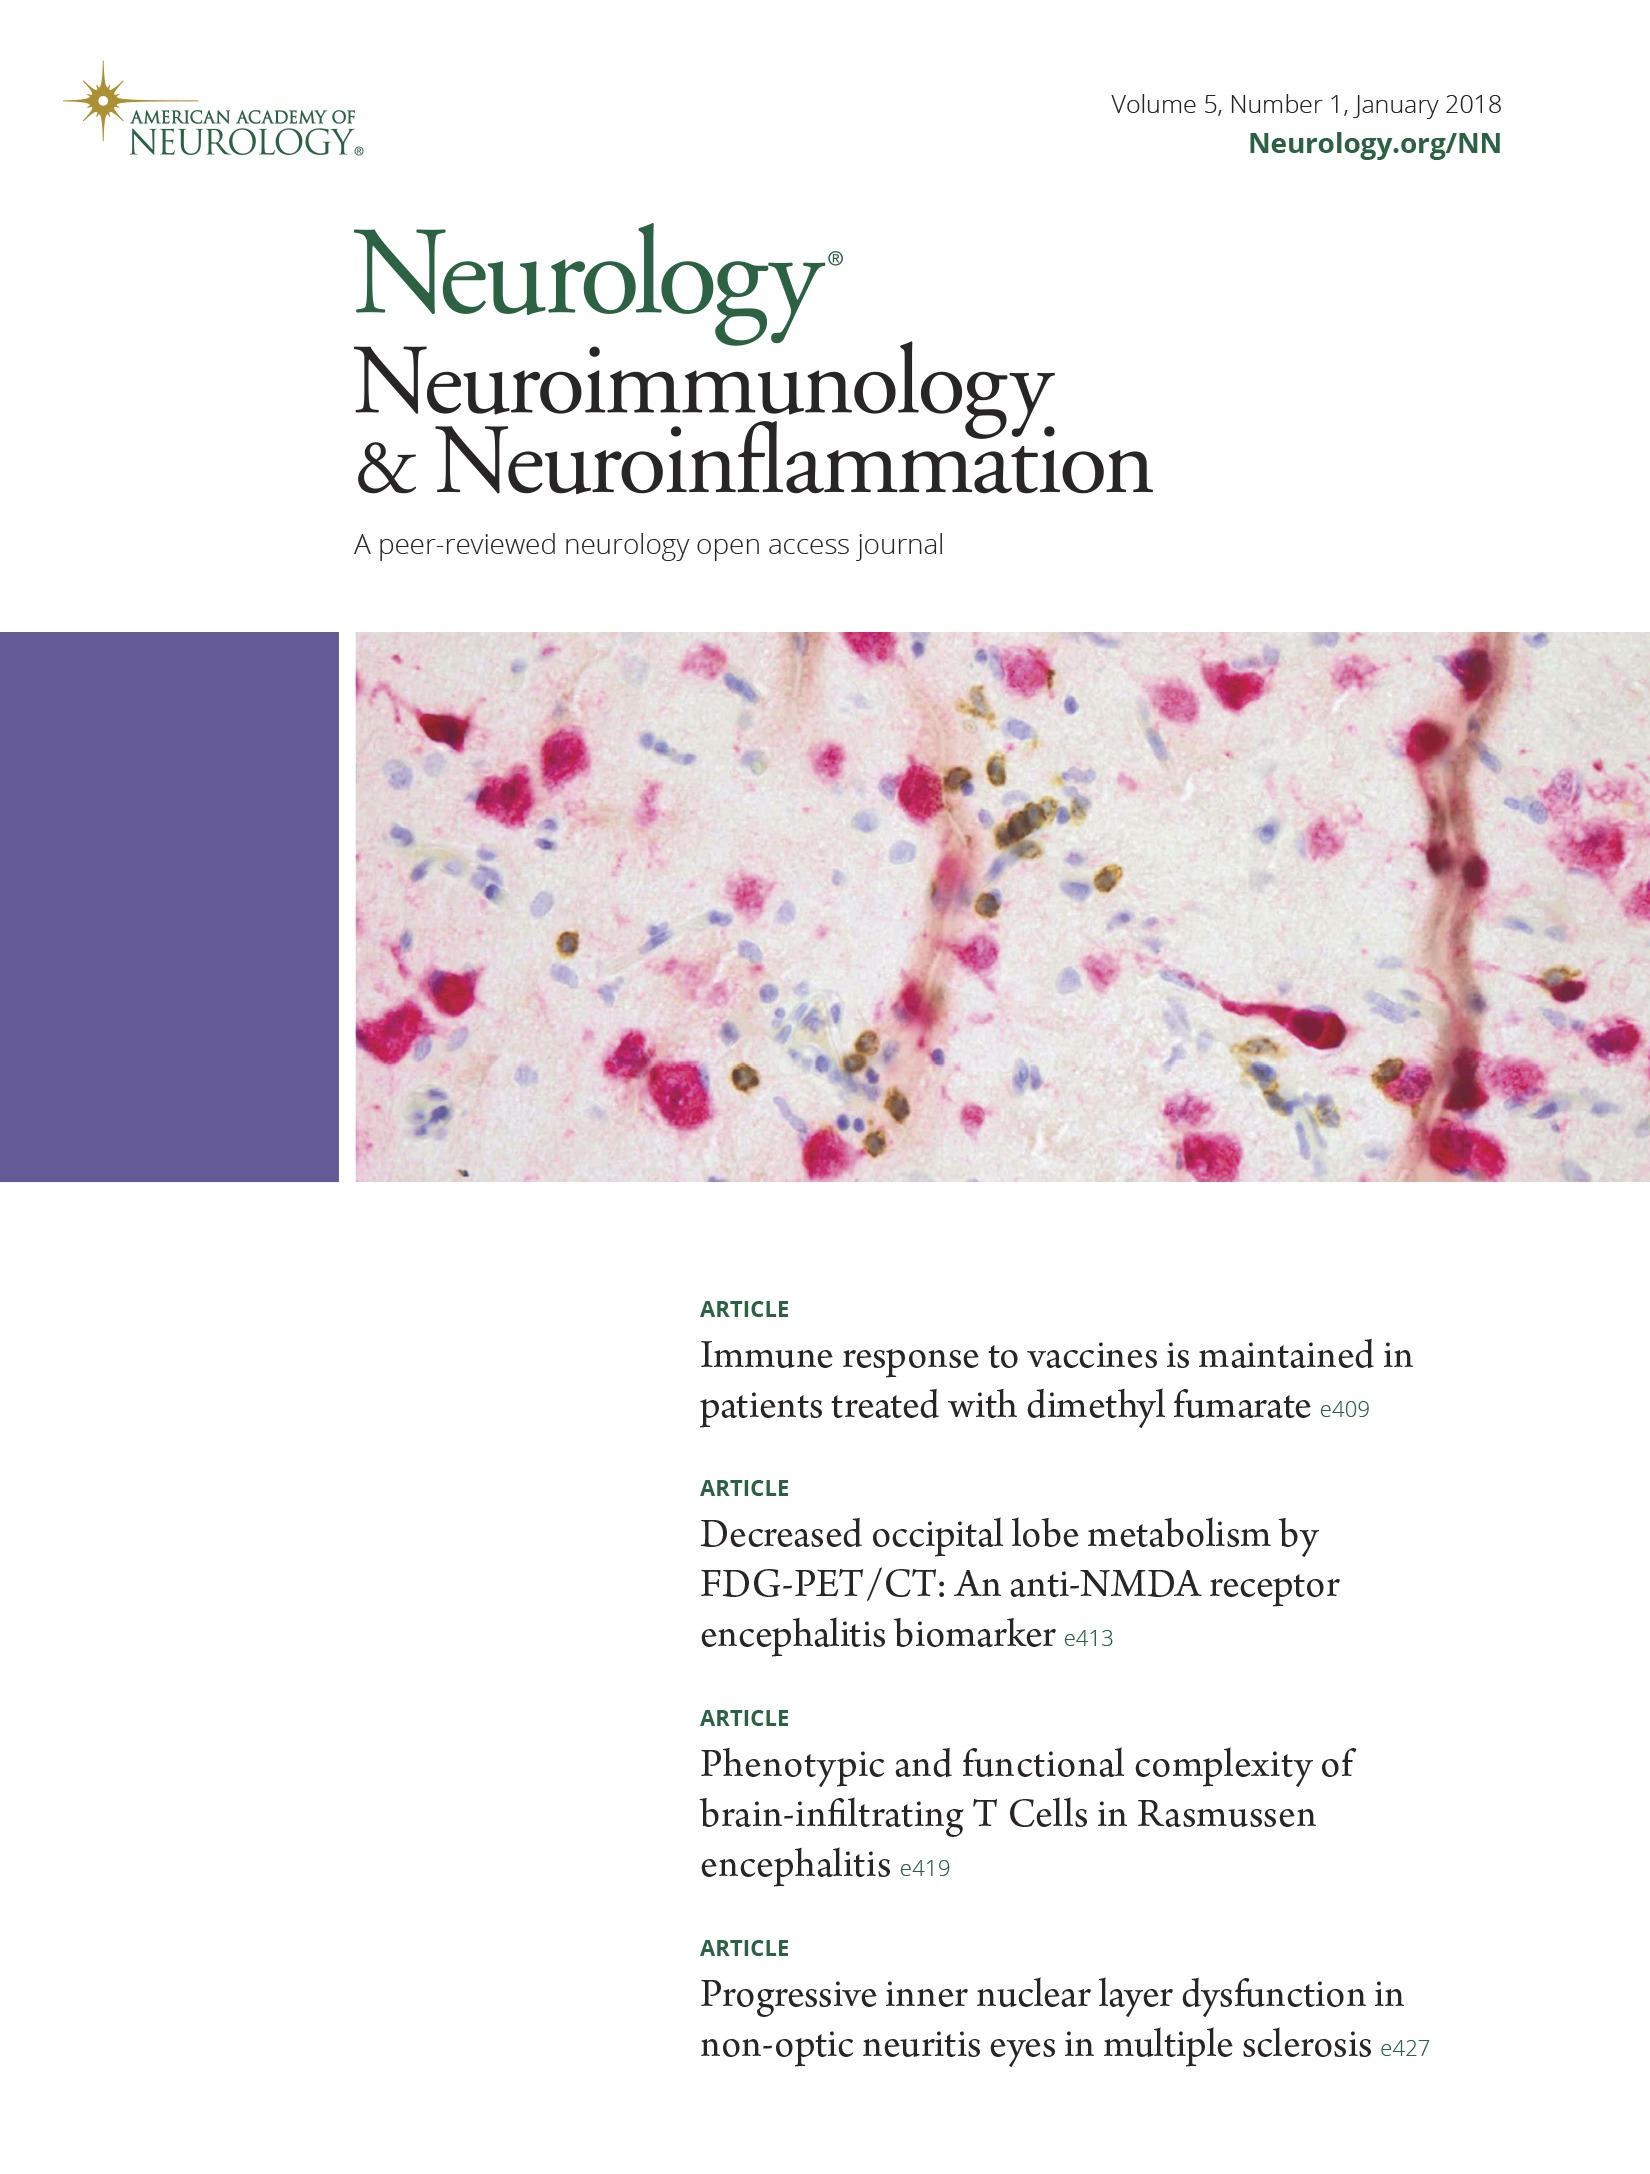 Pleocytosis is not fully responsible for low CSF glucose in